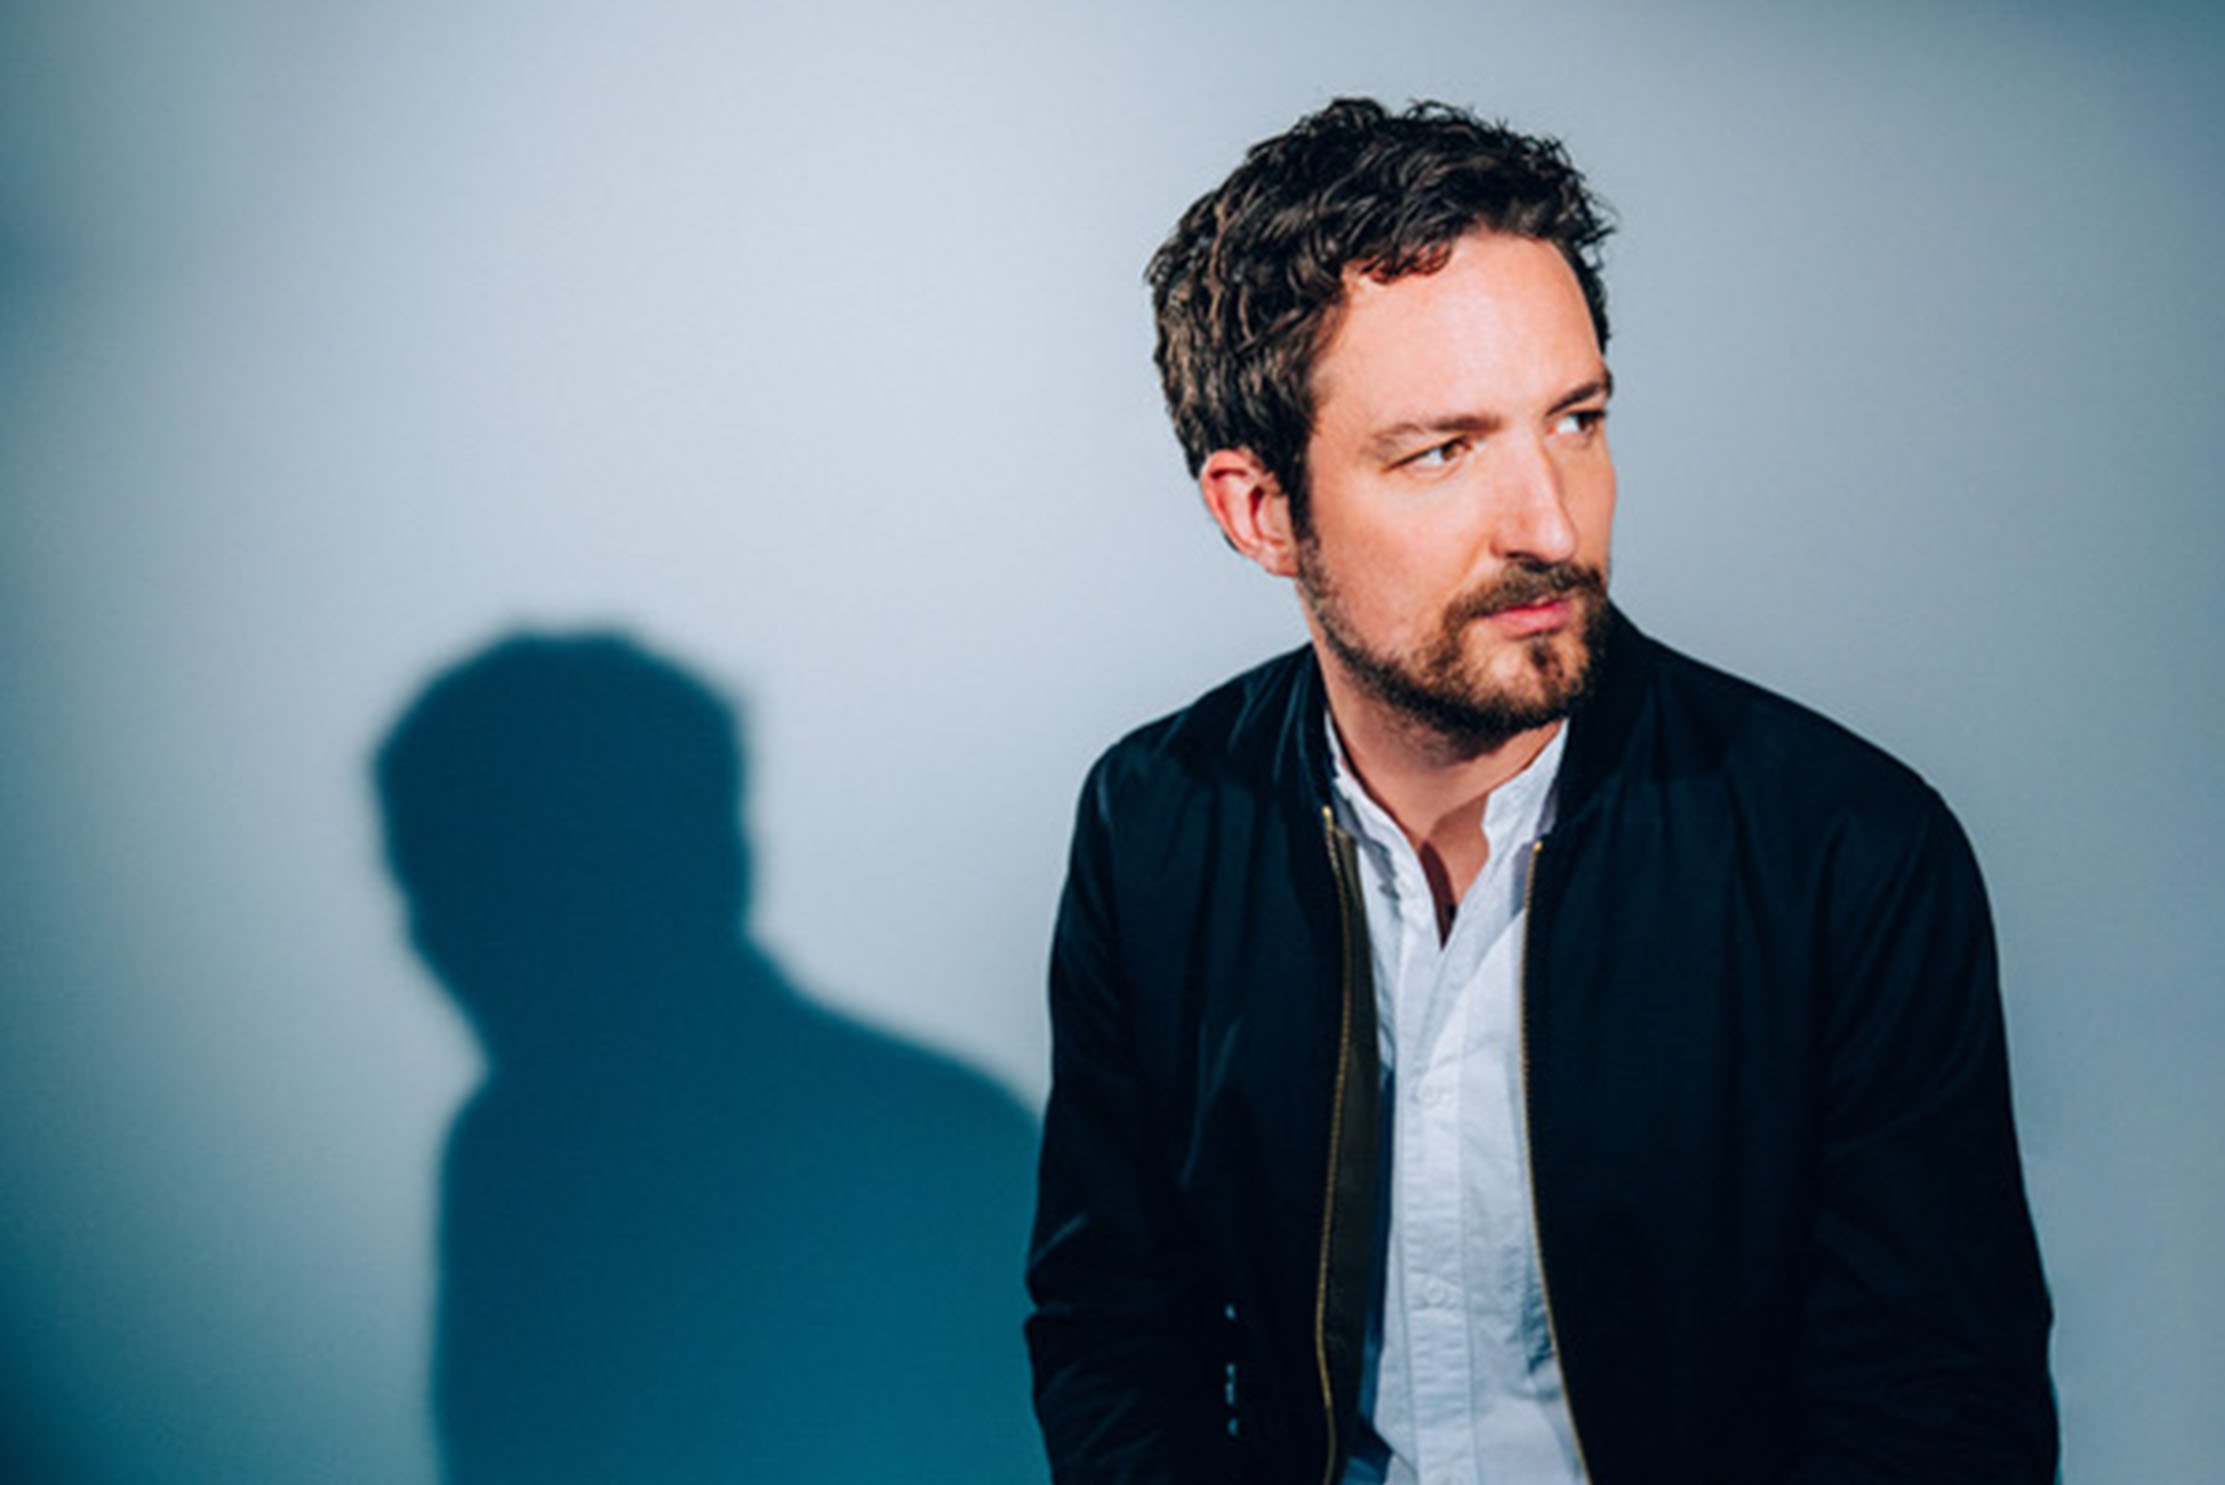 Frank Turner plays a solo show at Brighton Dome on Weds 4 March 2020